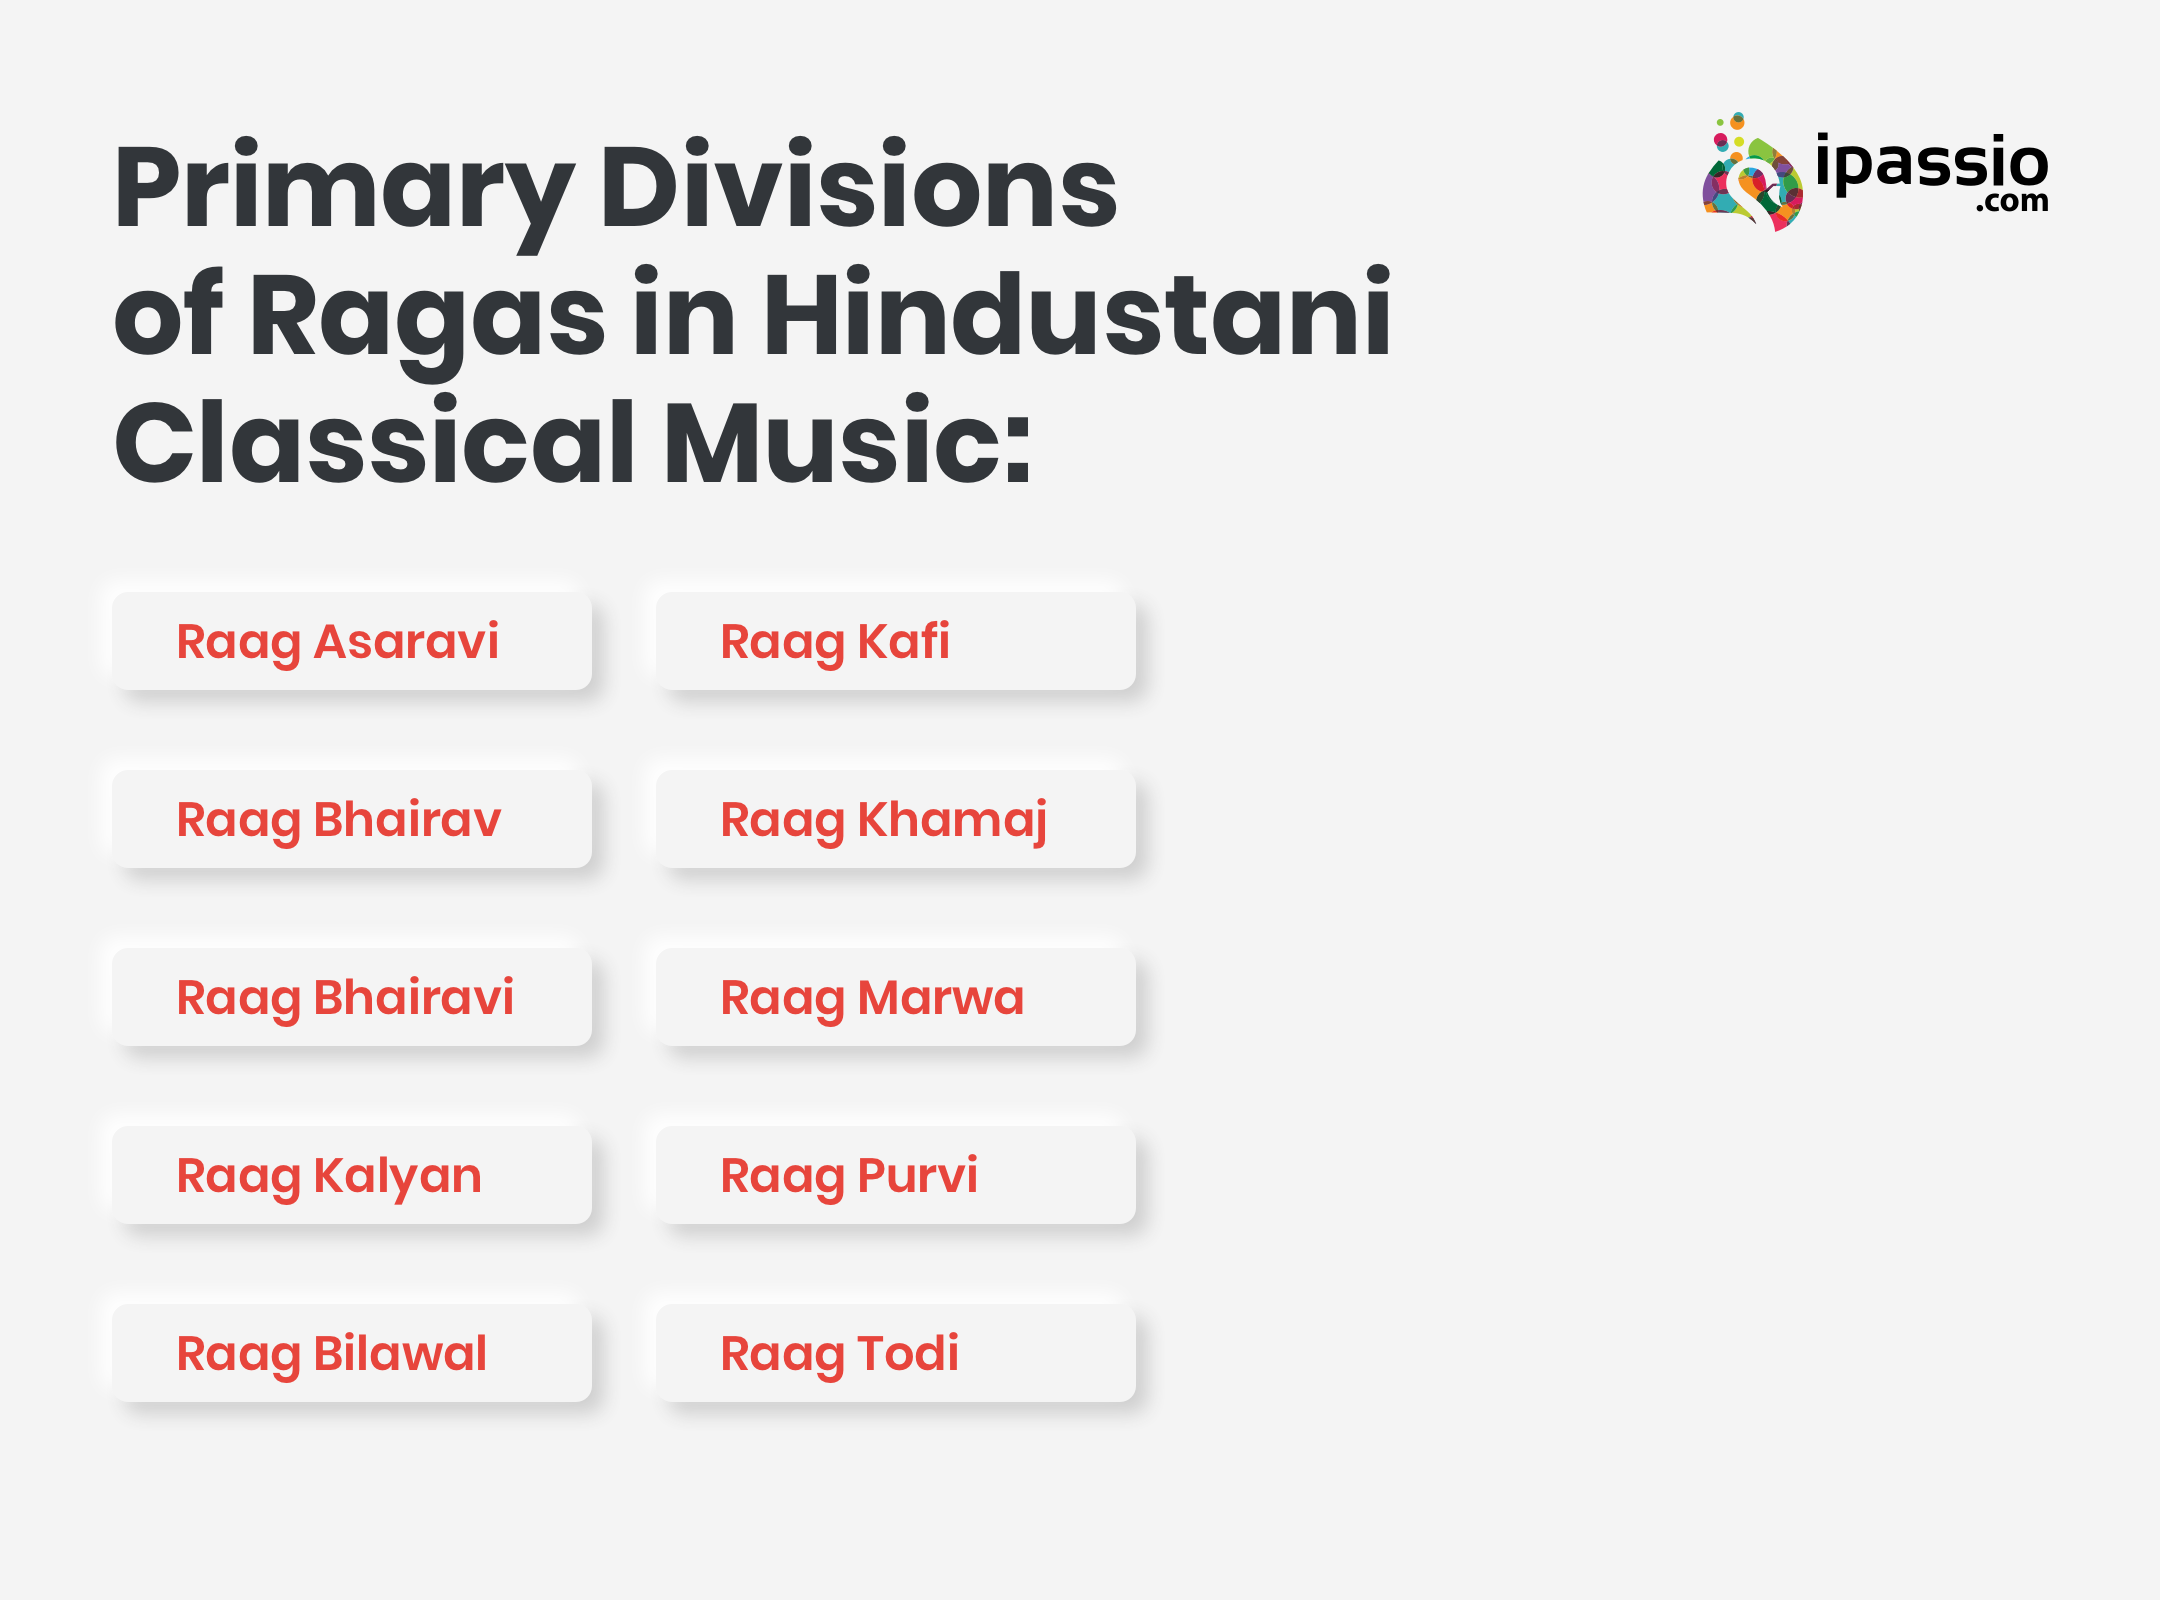 Primary Divisions of Ragas in Hindustani Classical Music